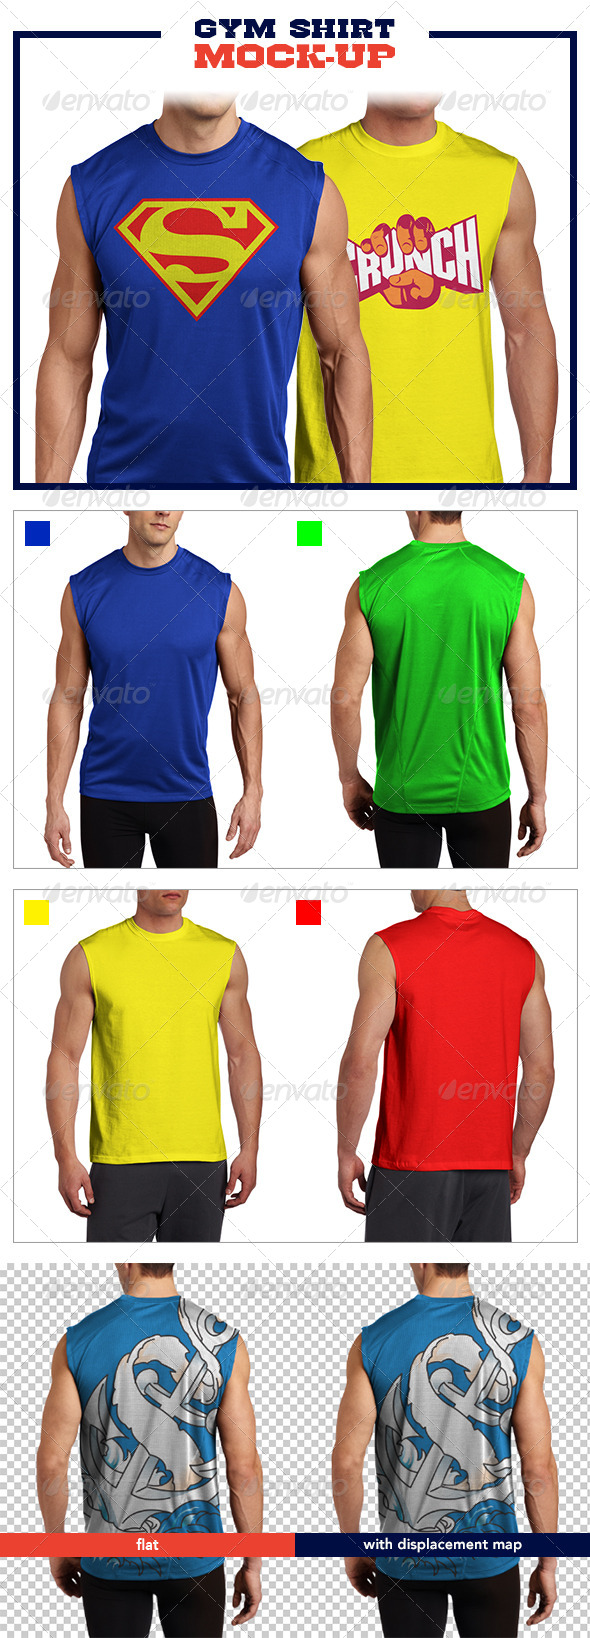 Gym Shirt Mockup Pack